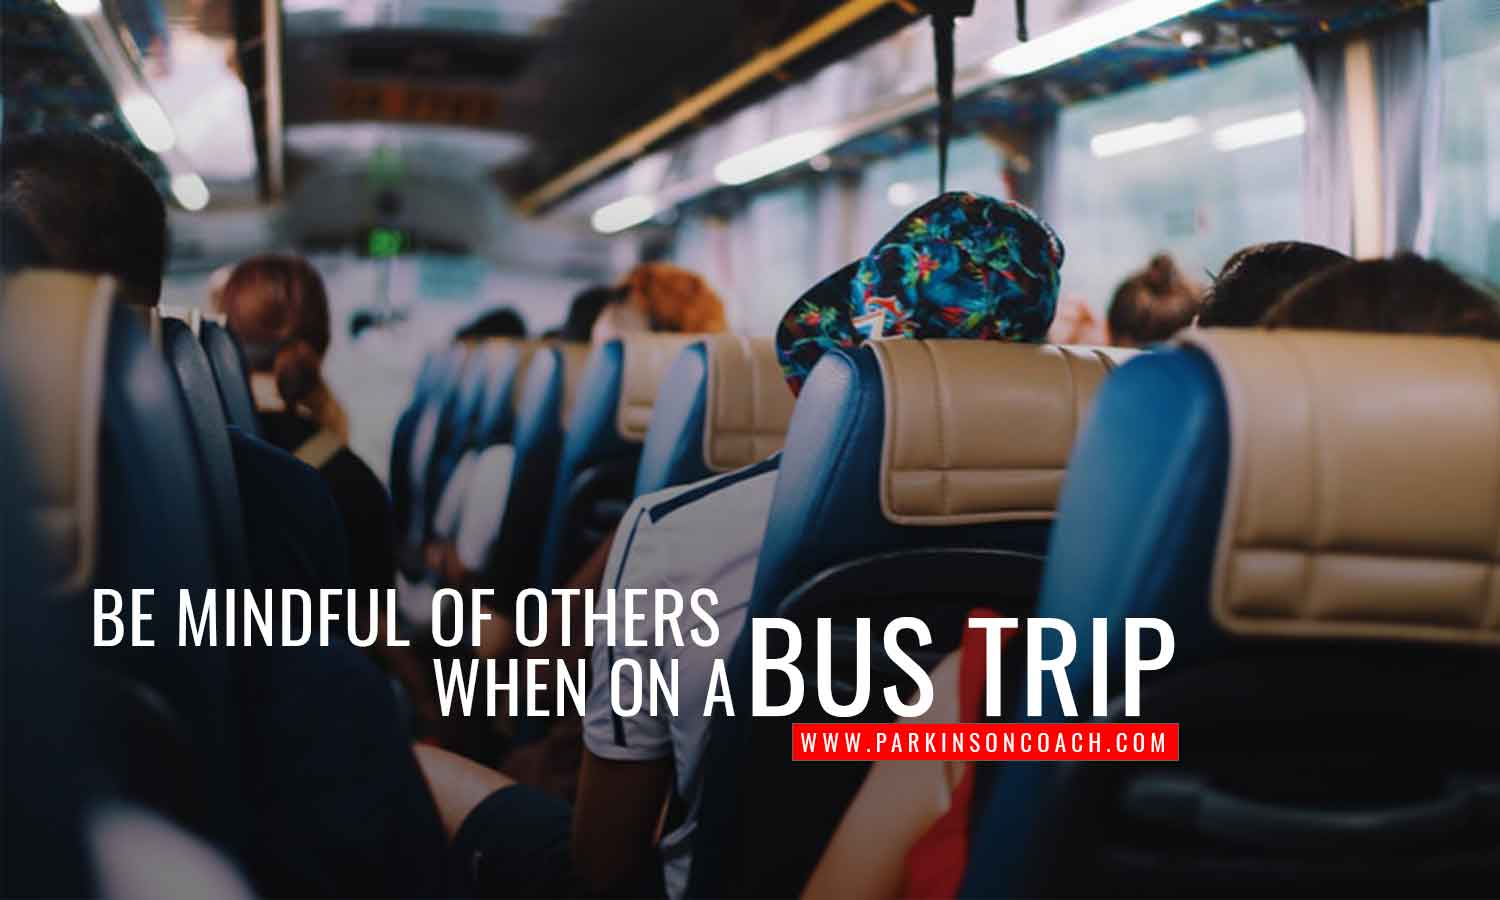 Be mindful of others when on a bus trip